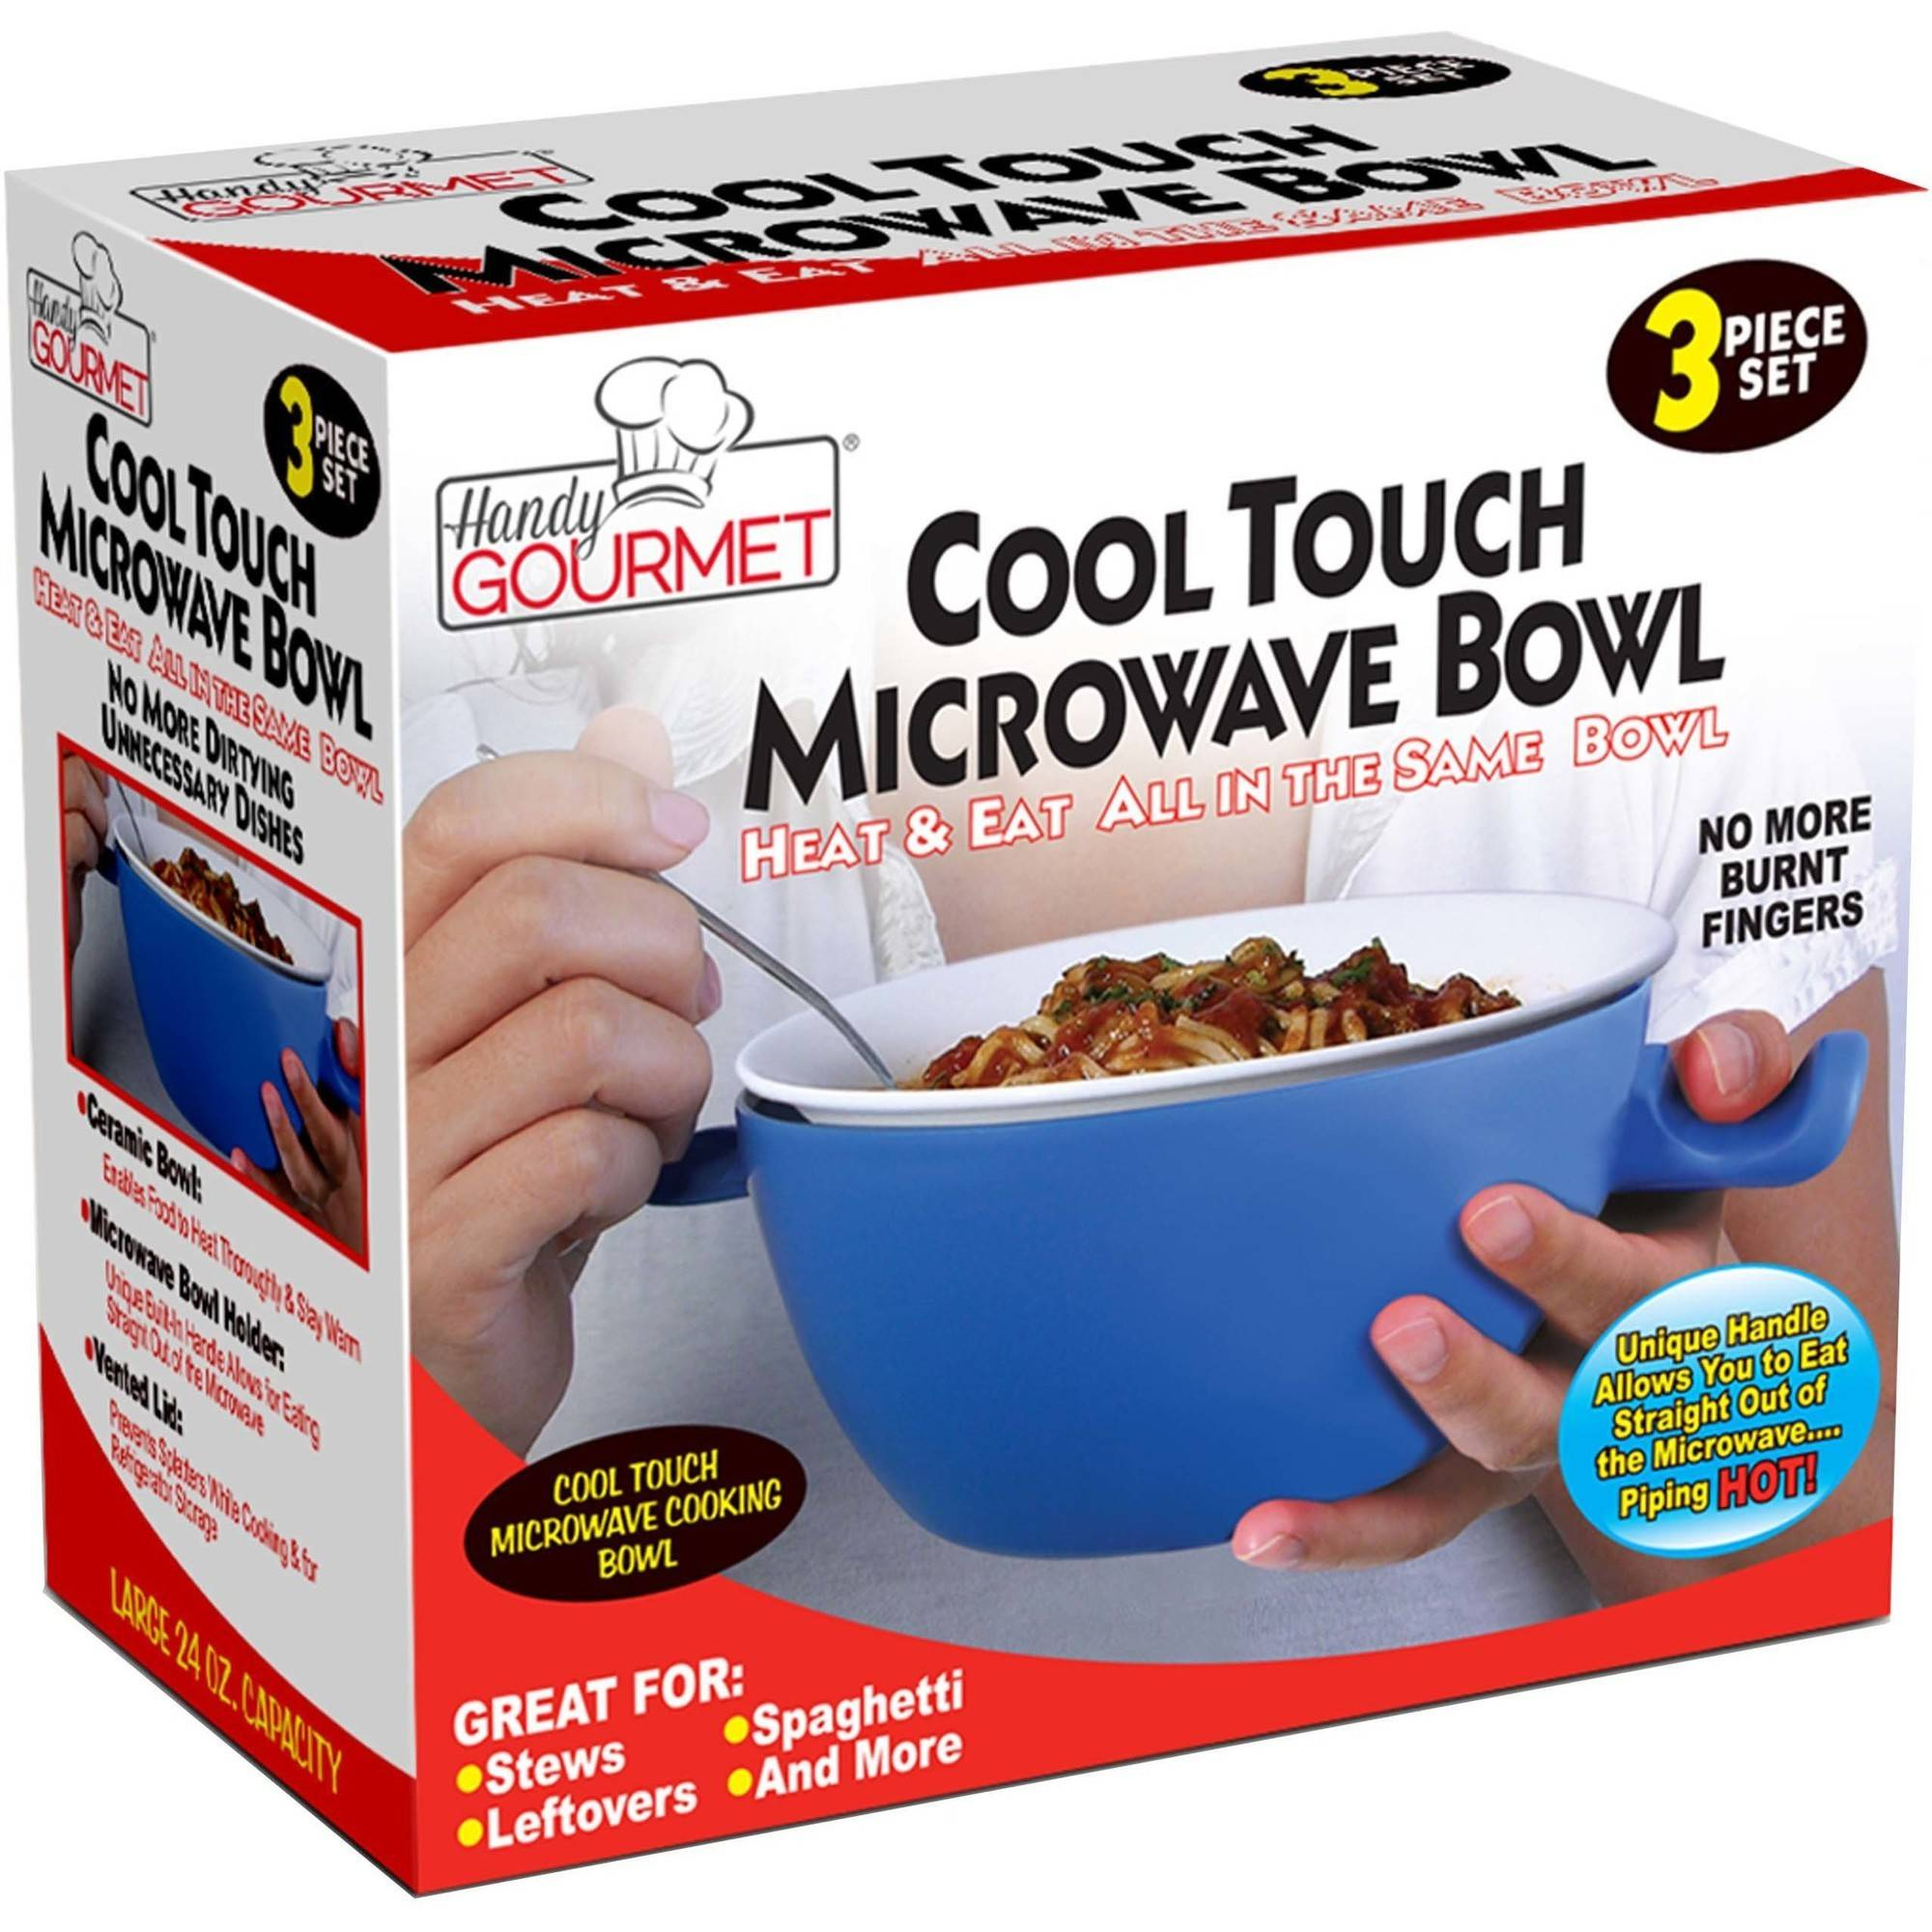 Handy Gourmet Jb5655 Cool Touch Micro Bowl, White and Blue